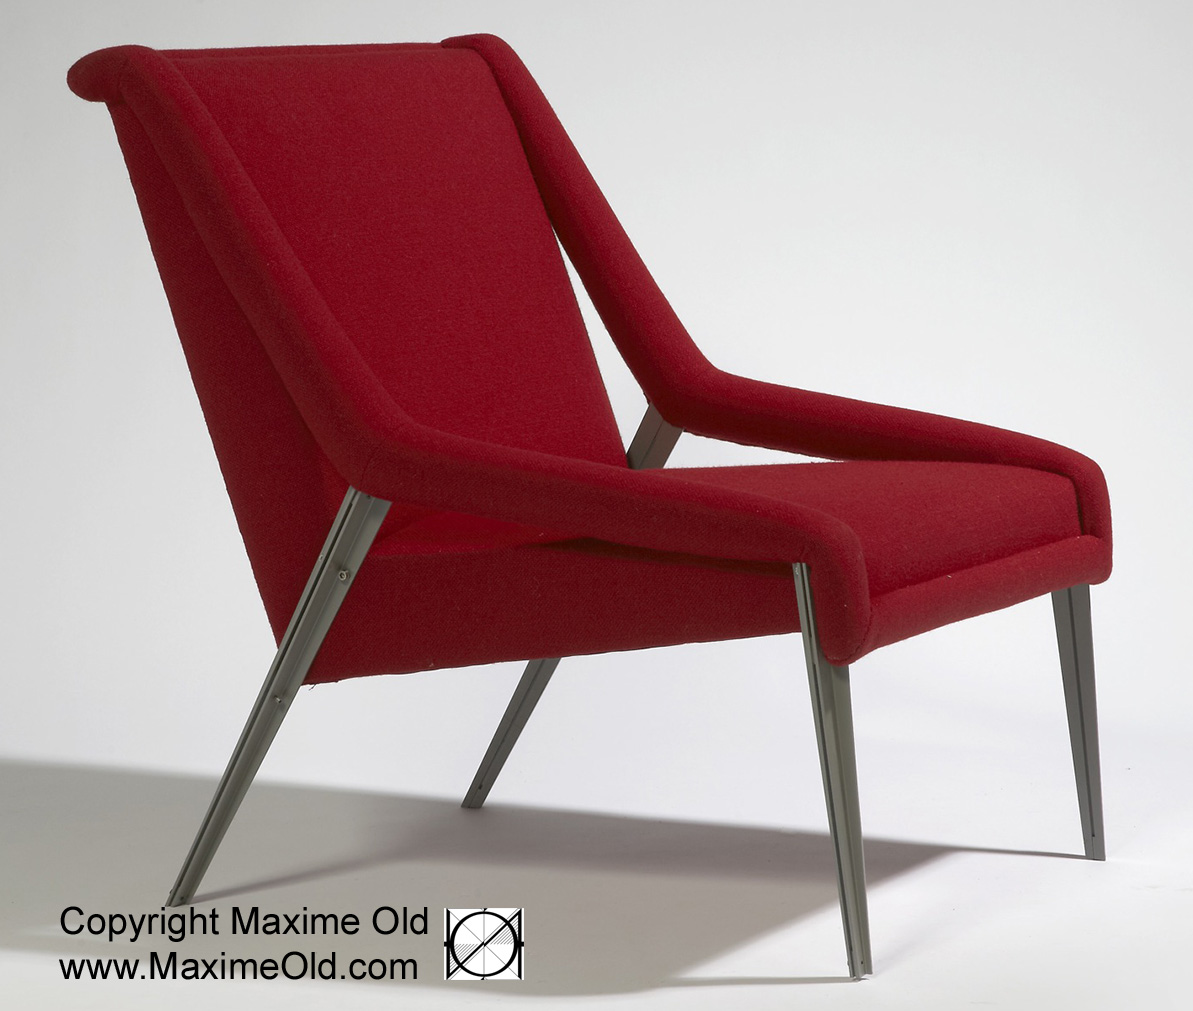 Paquebot France Light Armchair: Maxime Old, Modern Art Furniture Designer